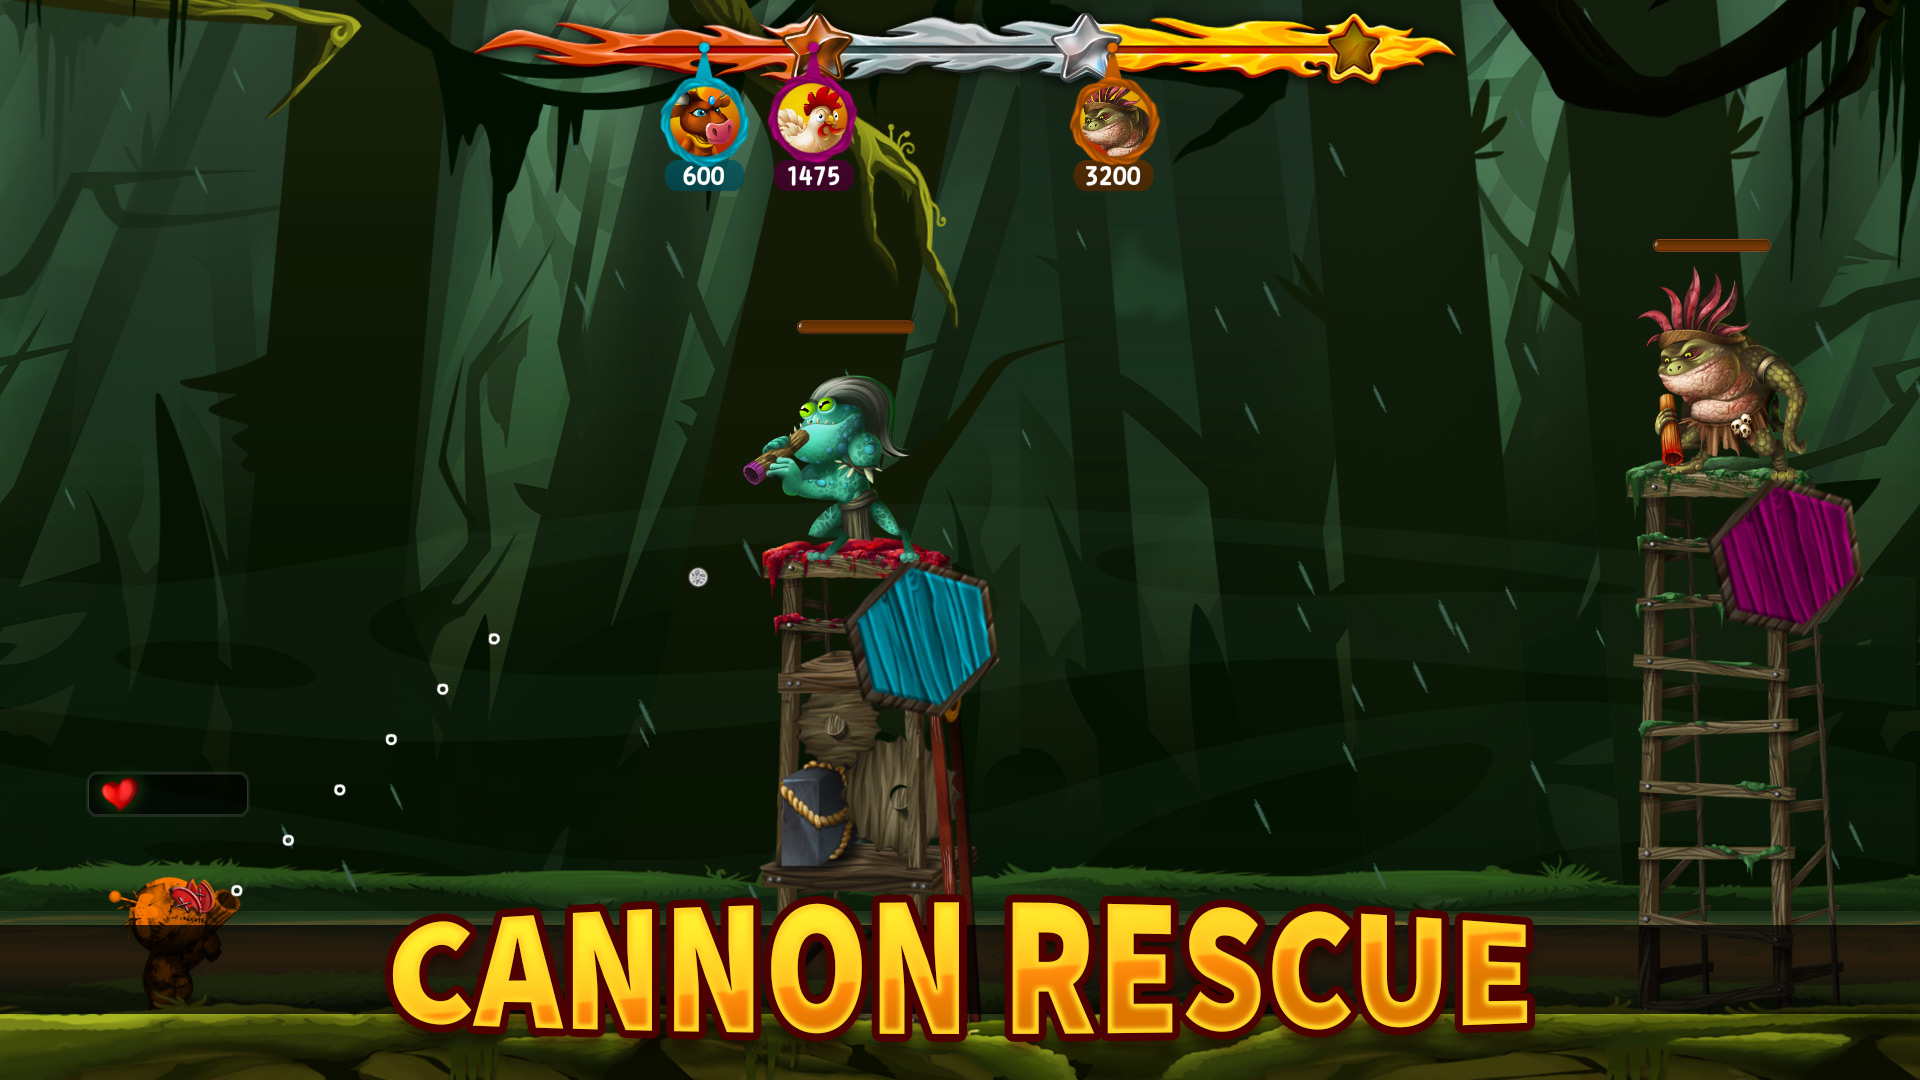 PP_CANNON_RESCUE